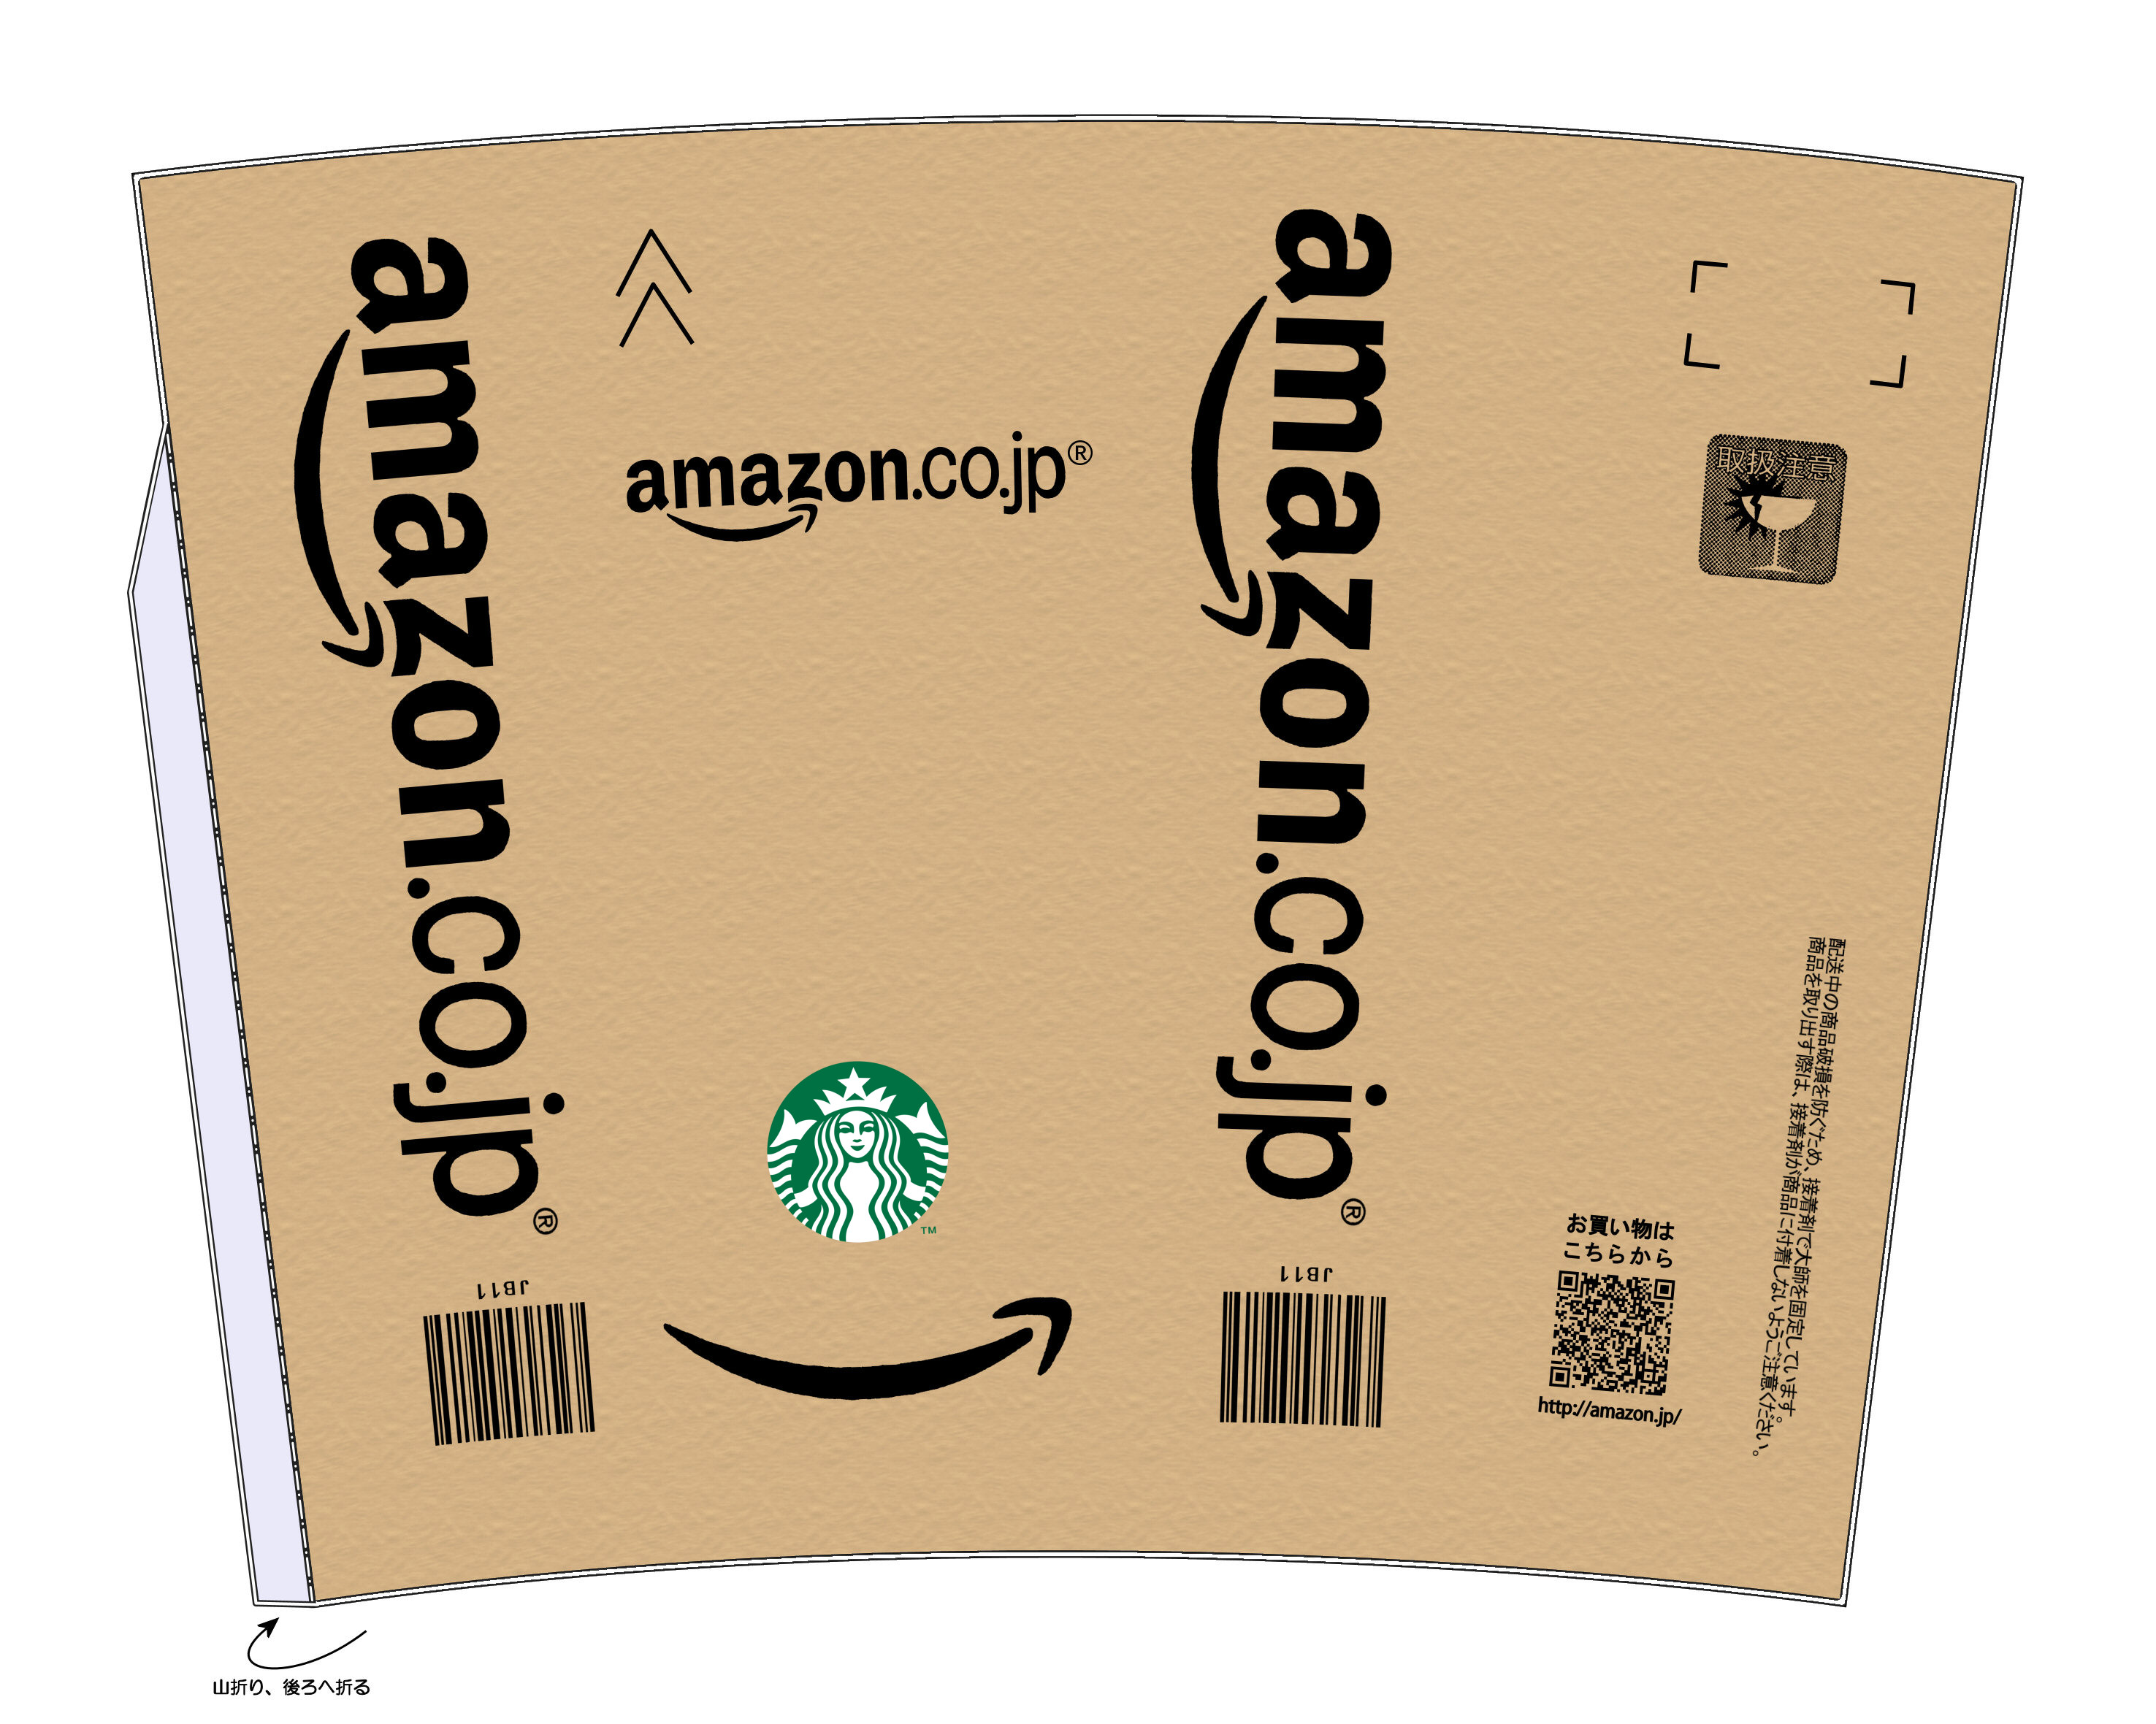 Starbucks plastic pleasures amazon box design pronofoot35fo Gallery